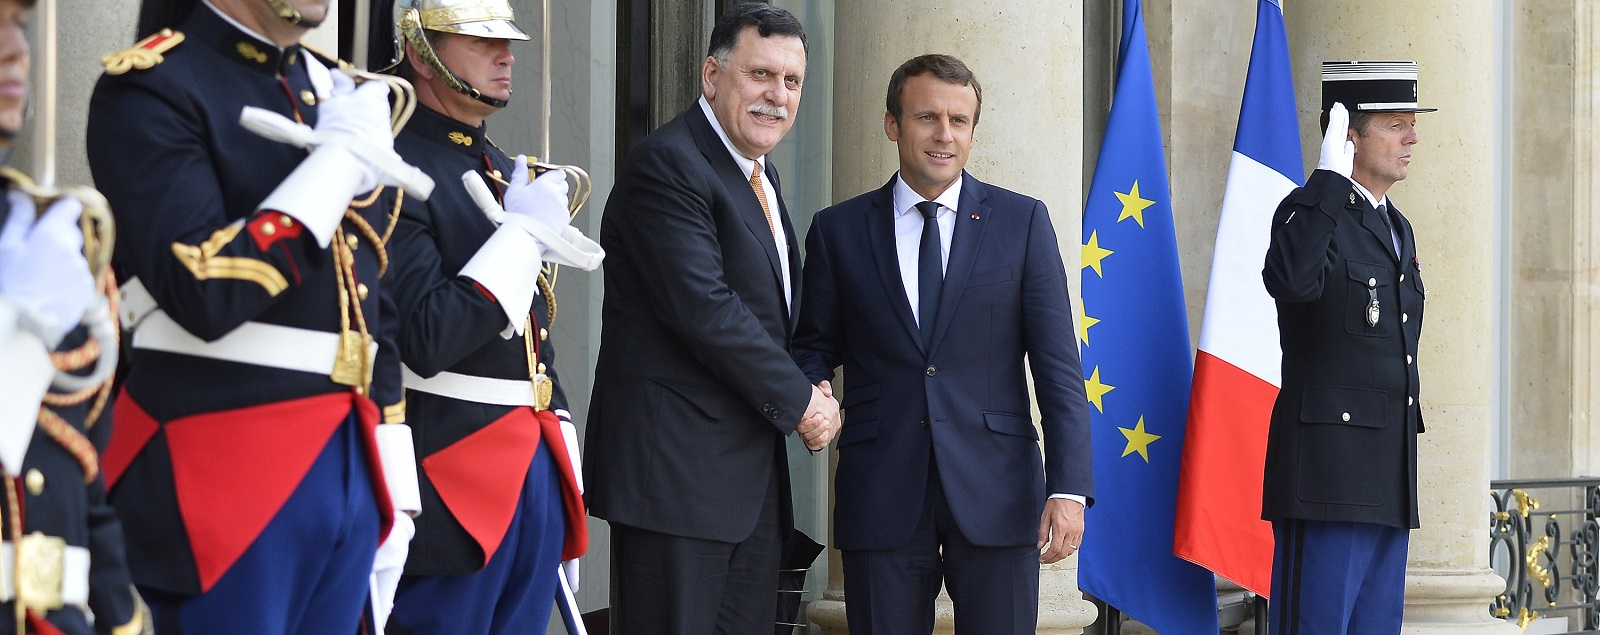 French President Emmanuel Macron with Fayez Al Serraj, PM of Libya's UN-backed government, on 28 August in Paris, France. (Photo: Aurelien Meunier/Getty Images)